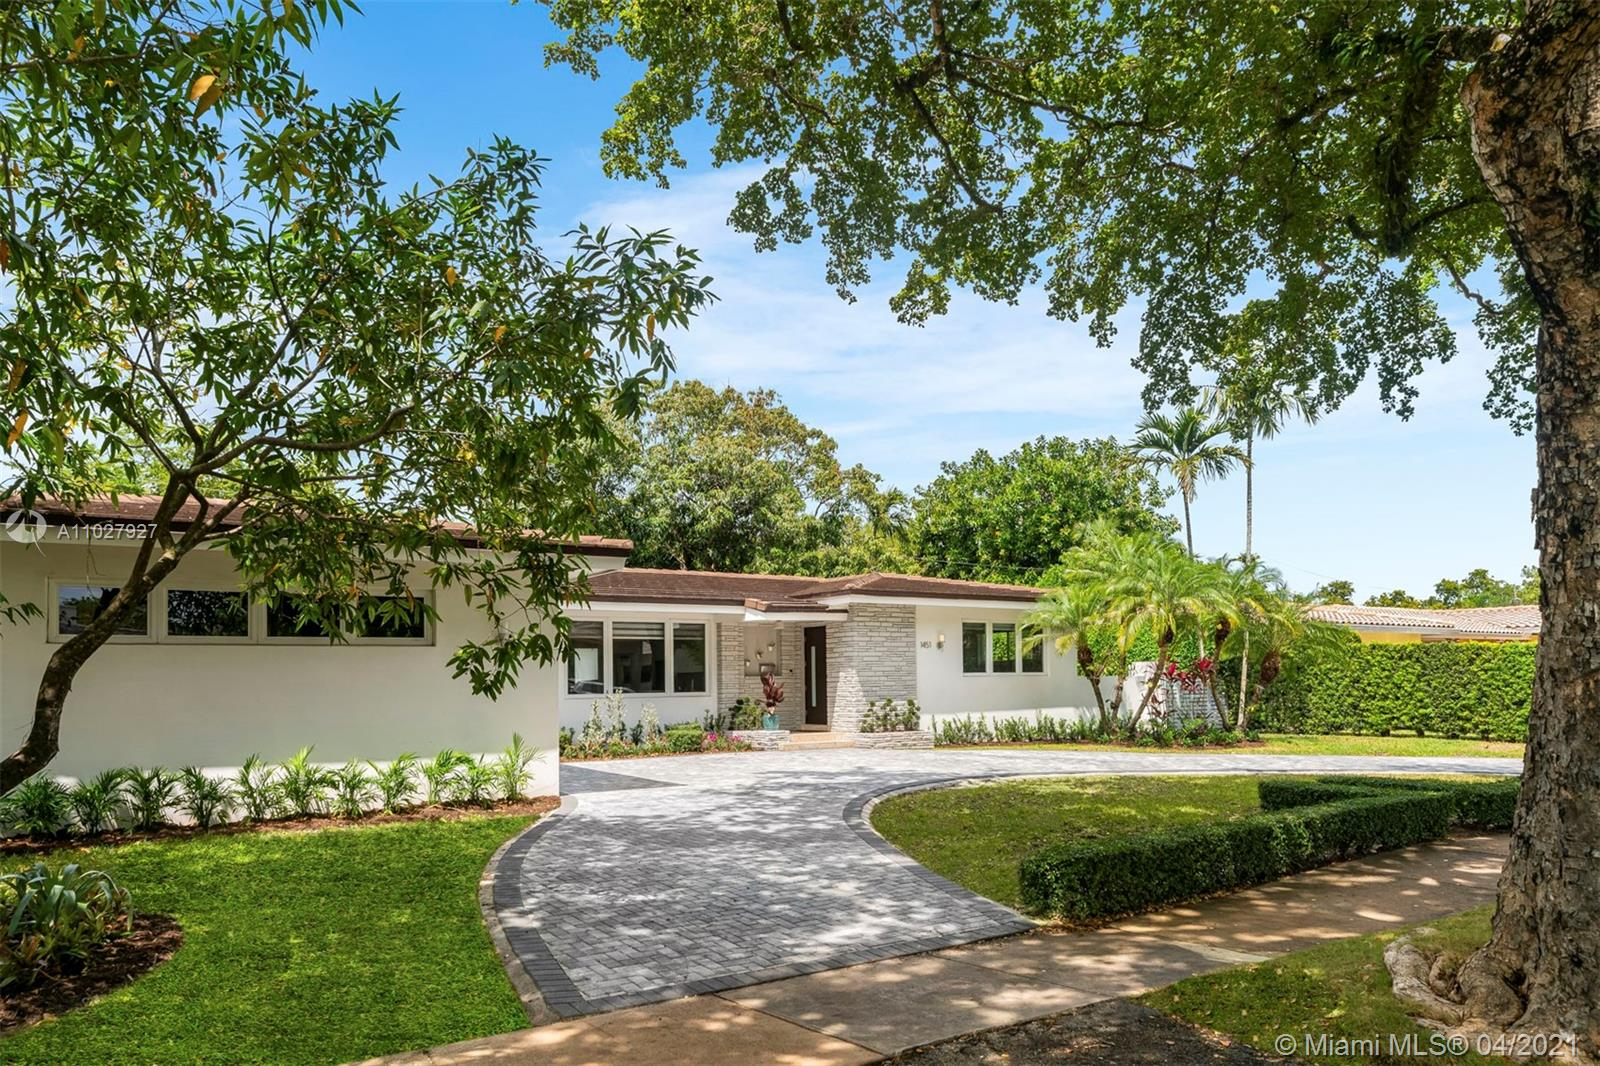 South Miami - 1451 Trillo Ave, Coral Gables, FL 33146